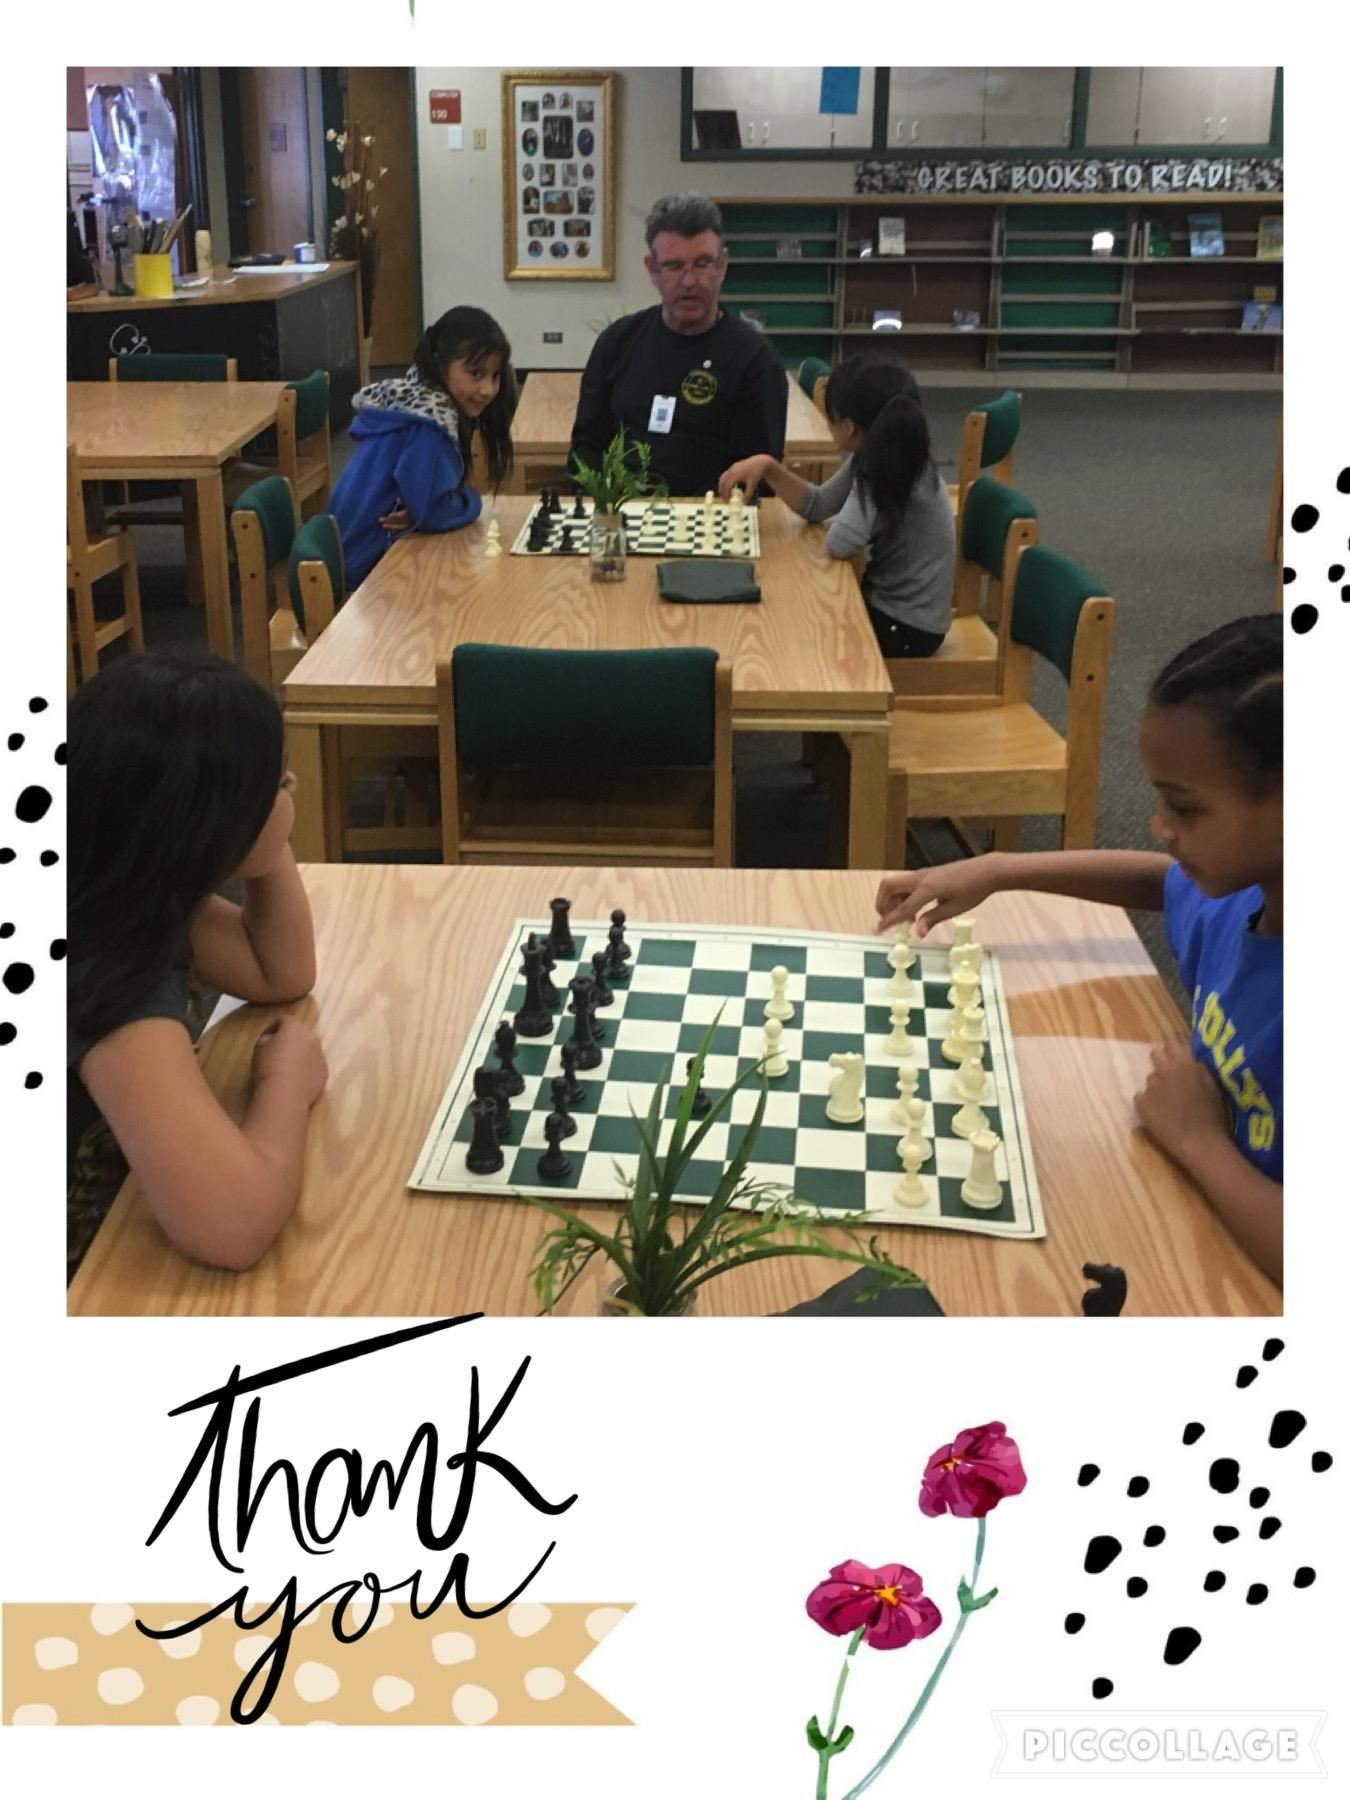 Man playing chess with students